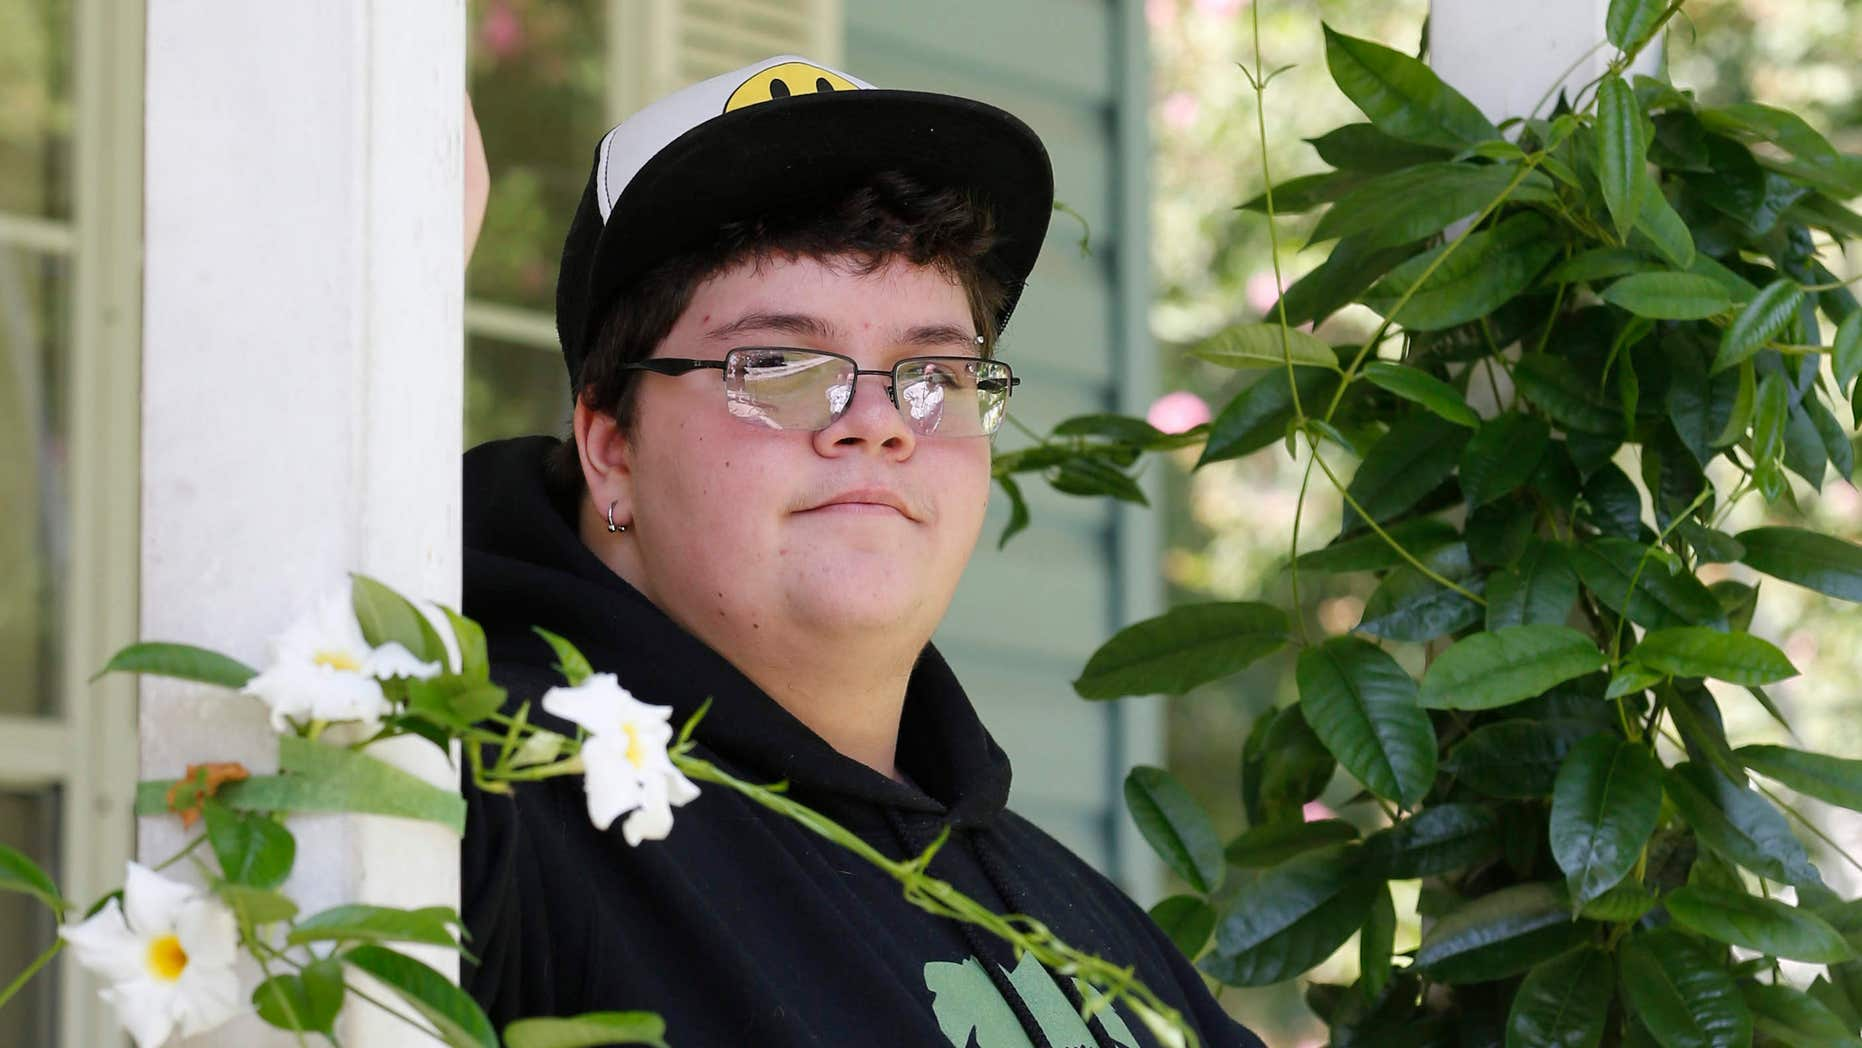 FILE - In this Aug. 25, 2015 file photo, Gavin Grimm poses on his front porch during an interview at his home in Gloucester, Va.